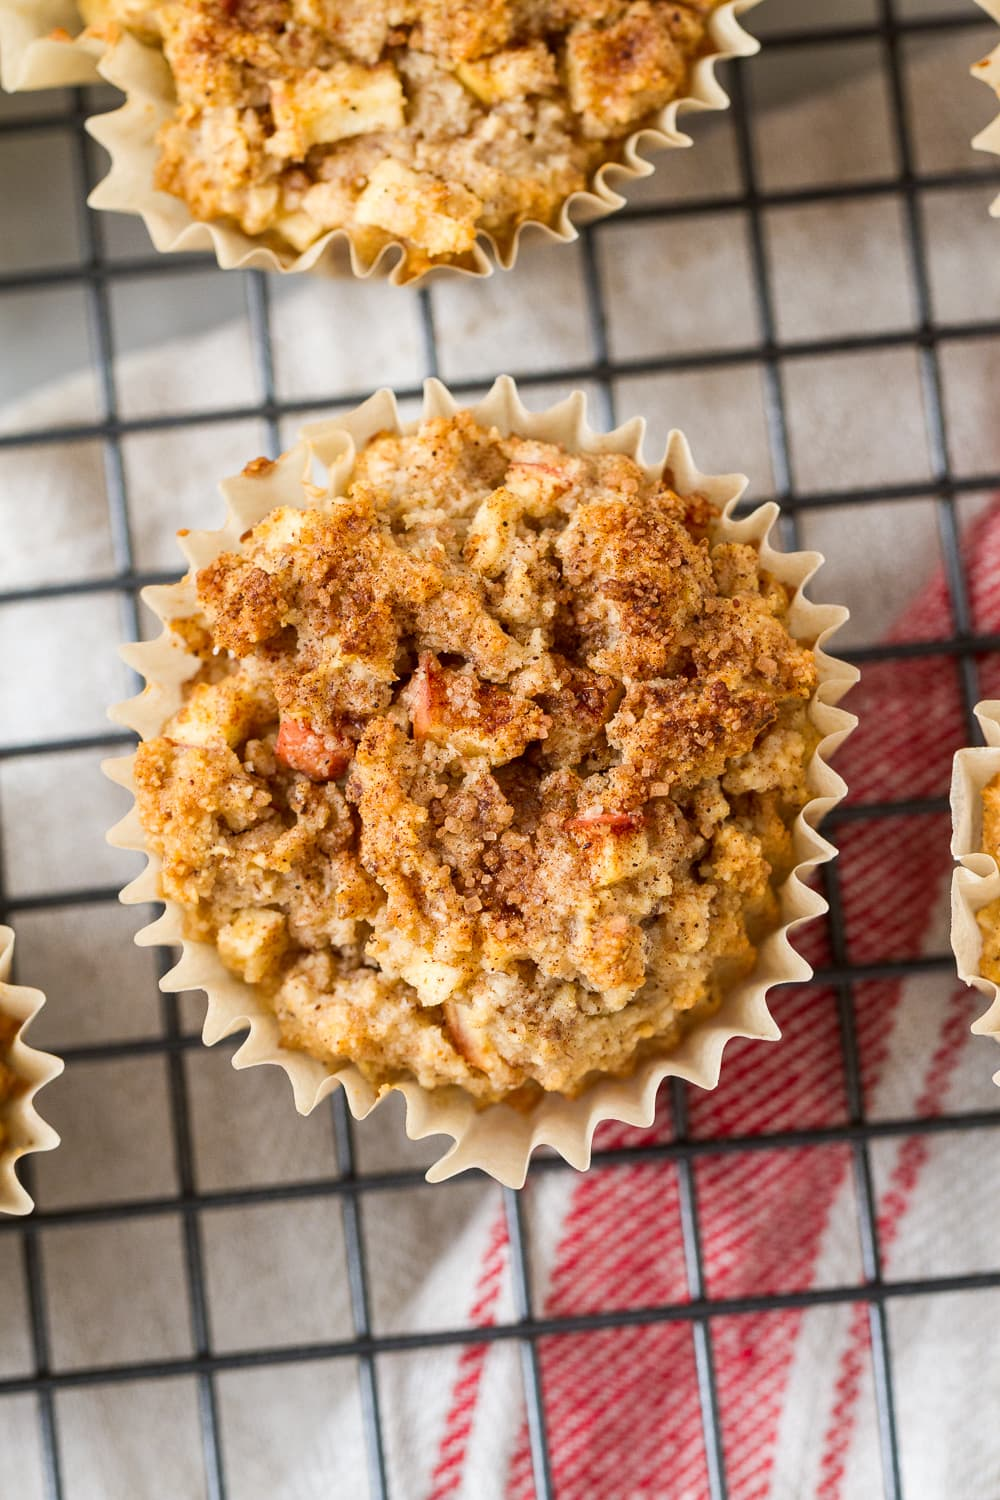 top down, close up view of apple cinnamon muffin with cinnamon sugar topping cooling on a wire rack